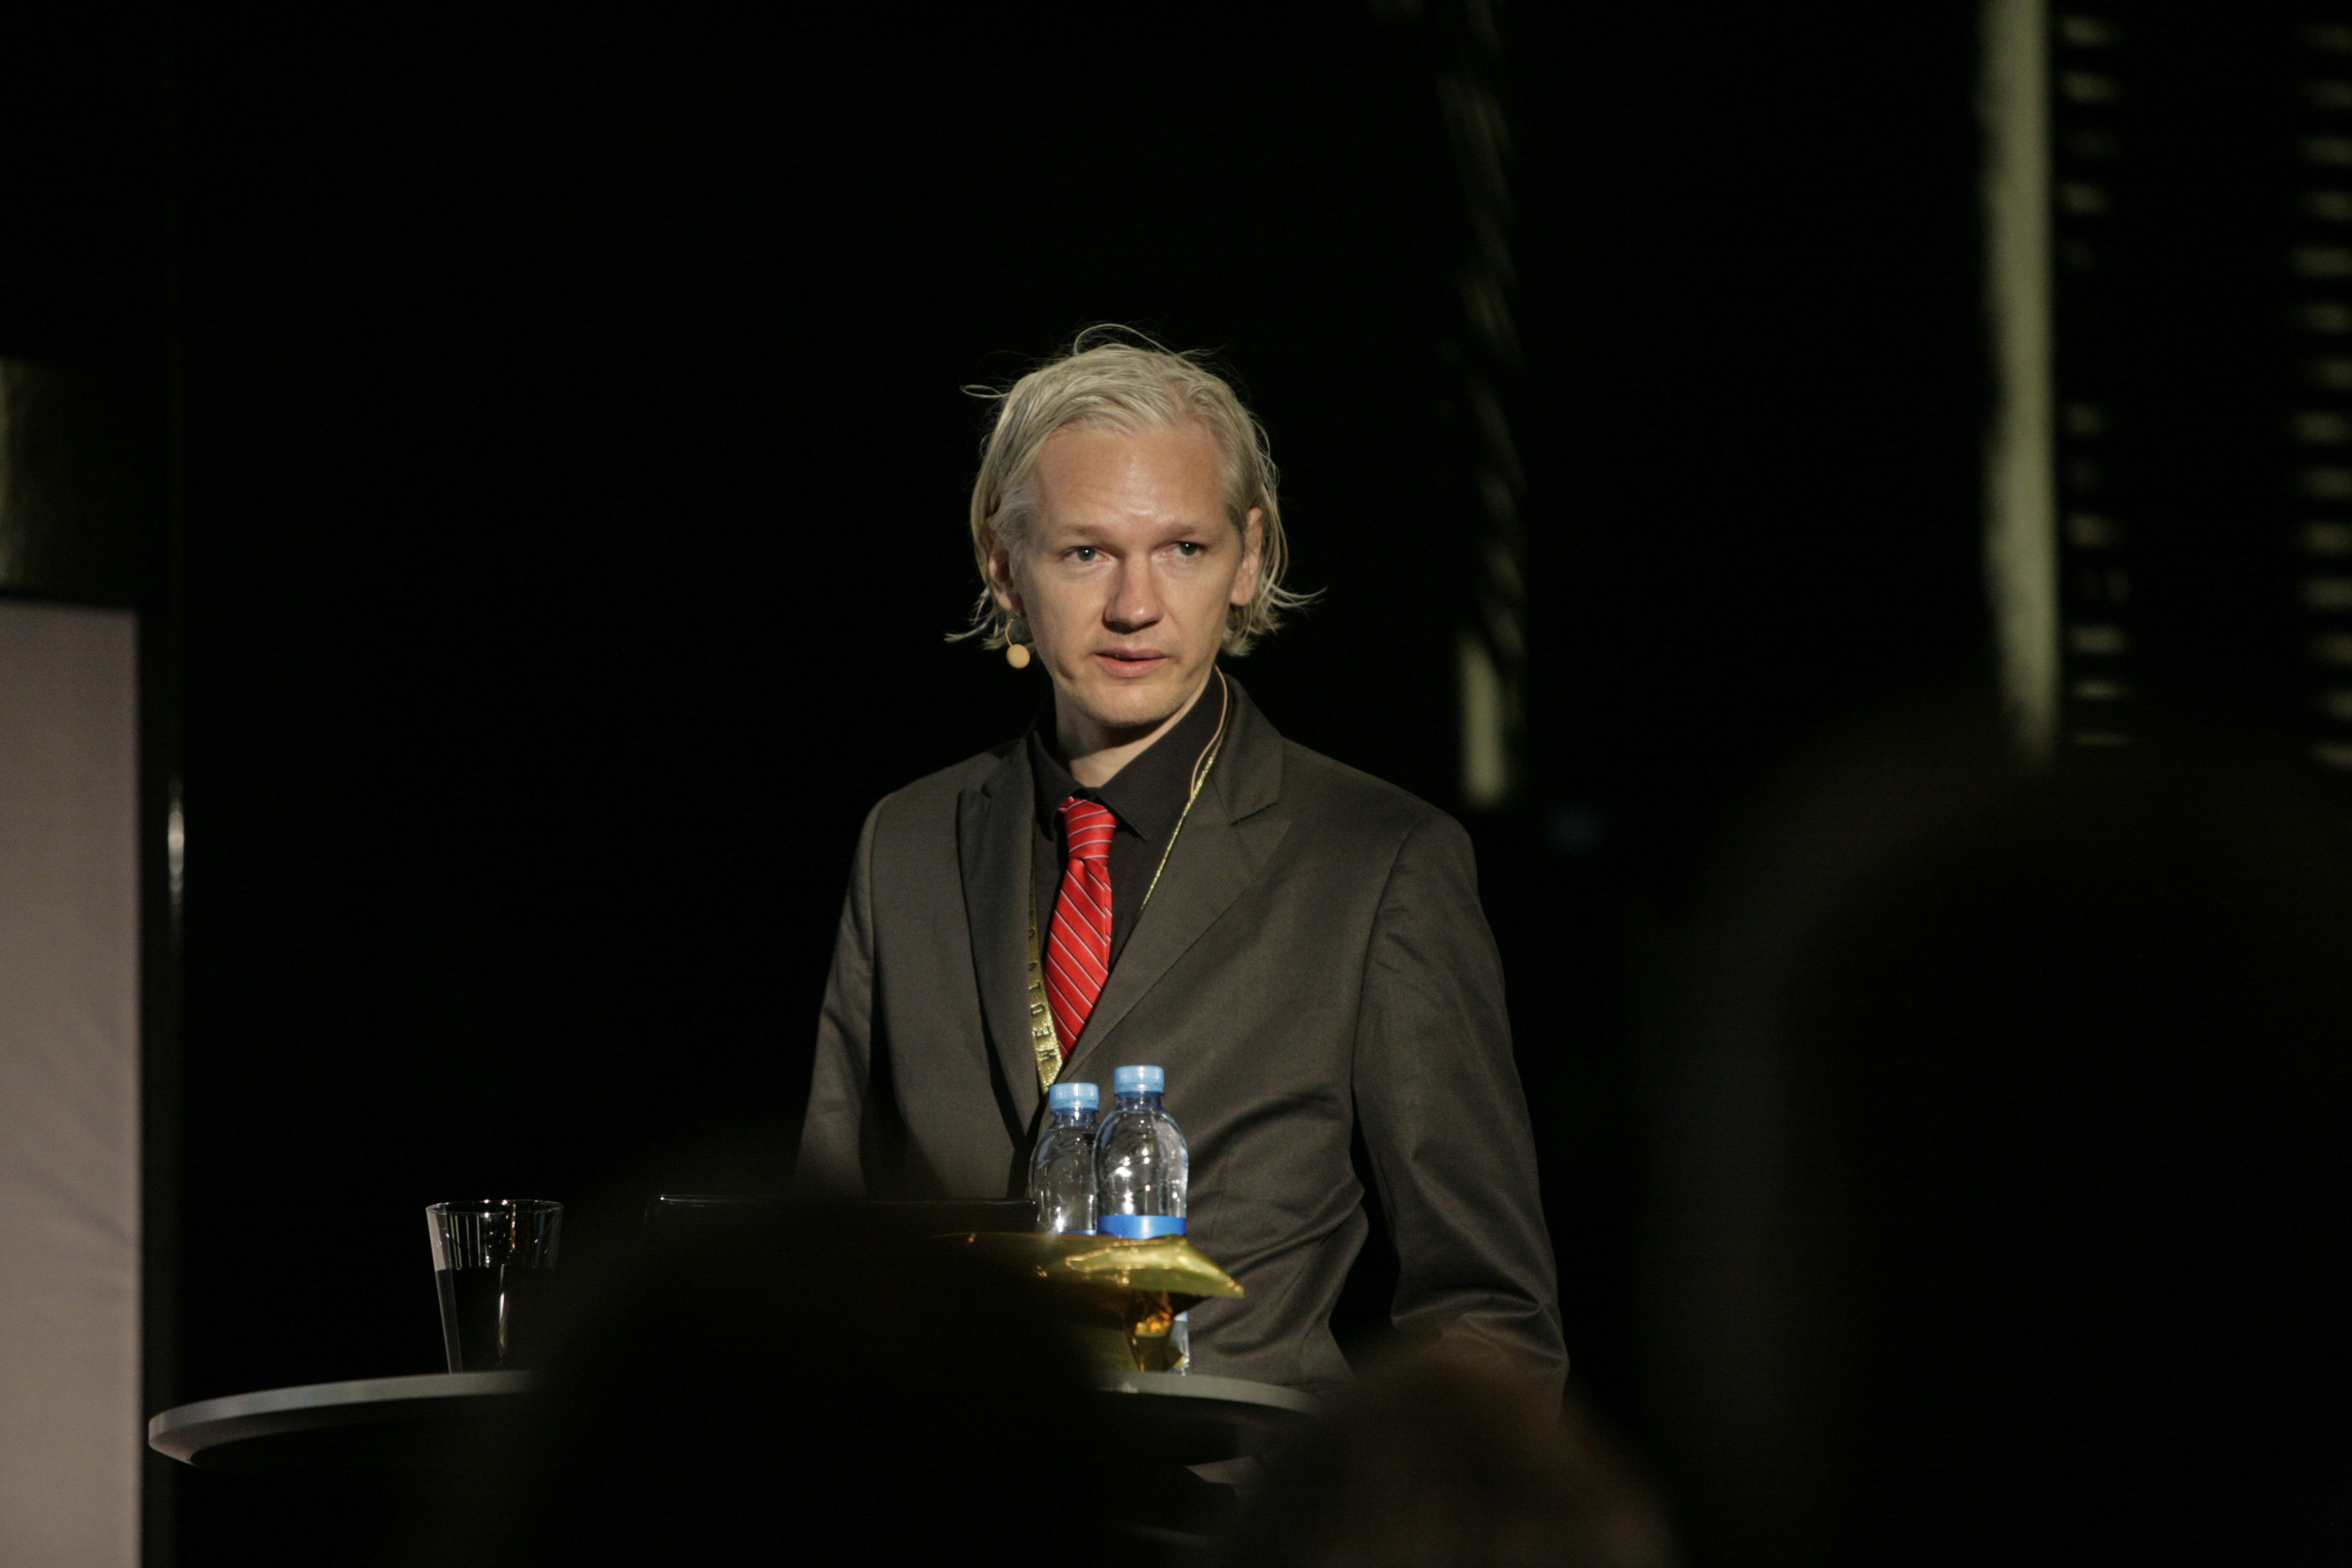 Assange giving talk in 2009. (New Media Days via Flickr)